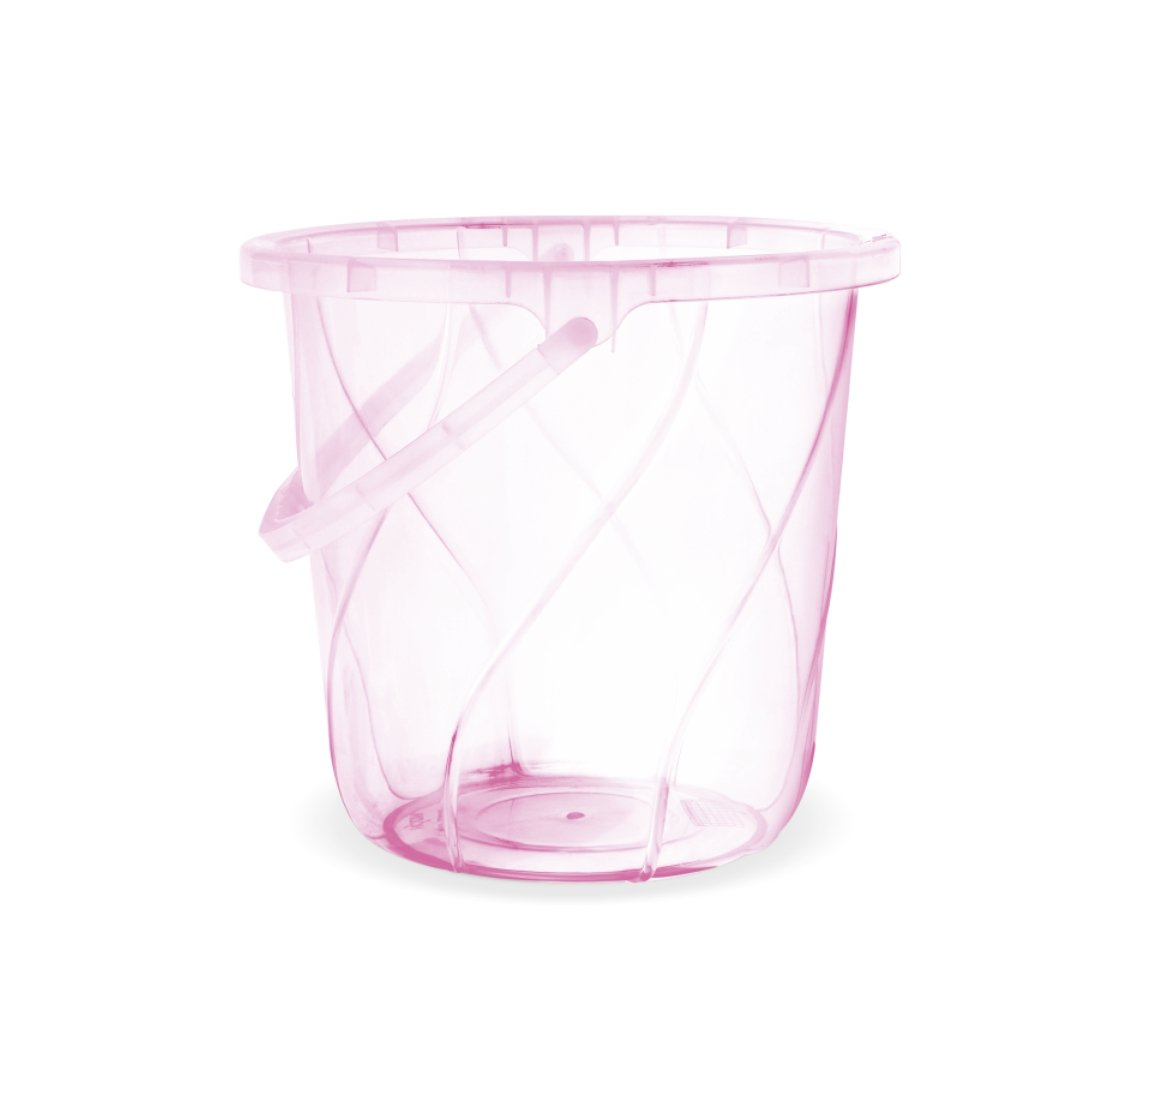 MILTON ORBIT BUCKET TRANS 22(20L)